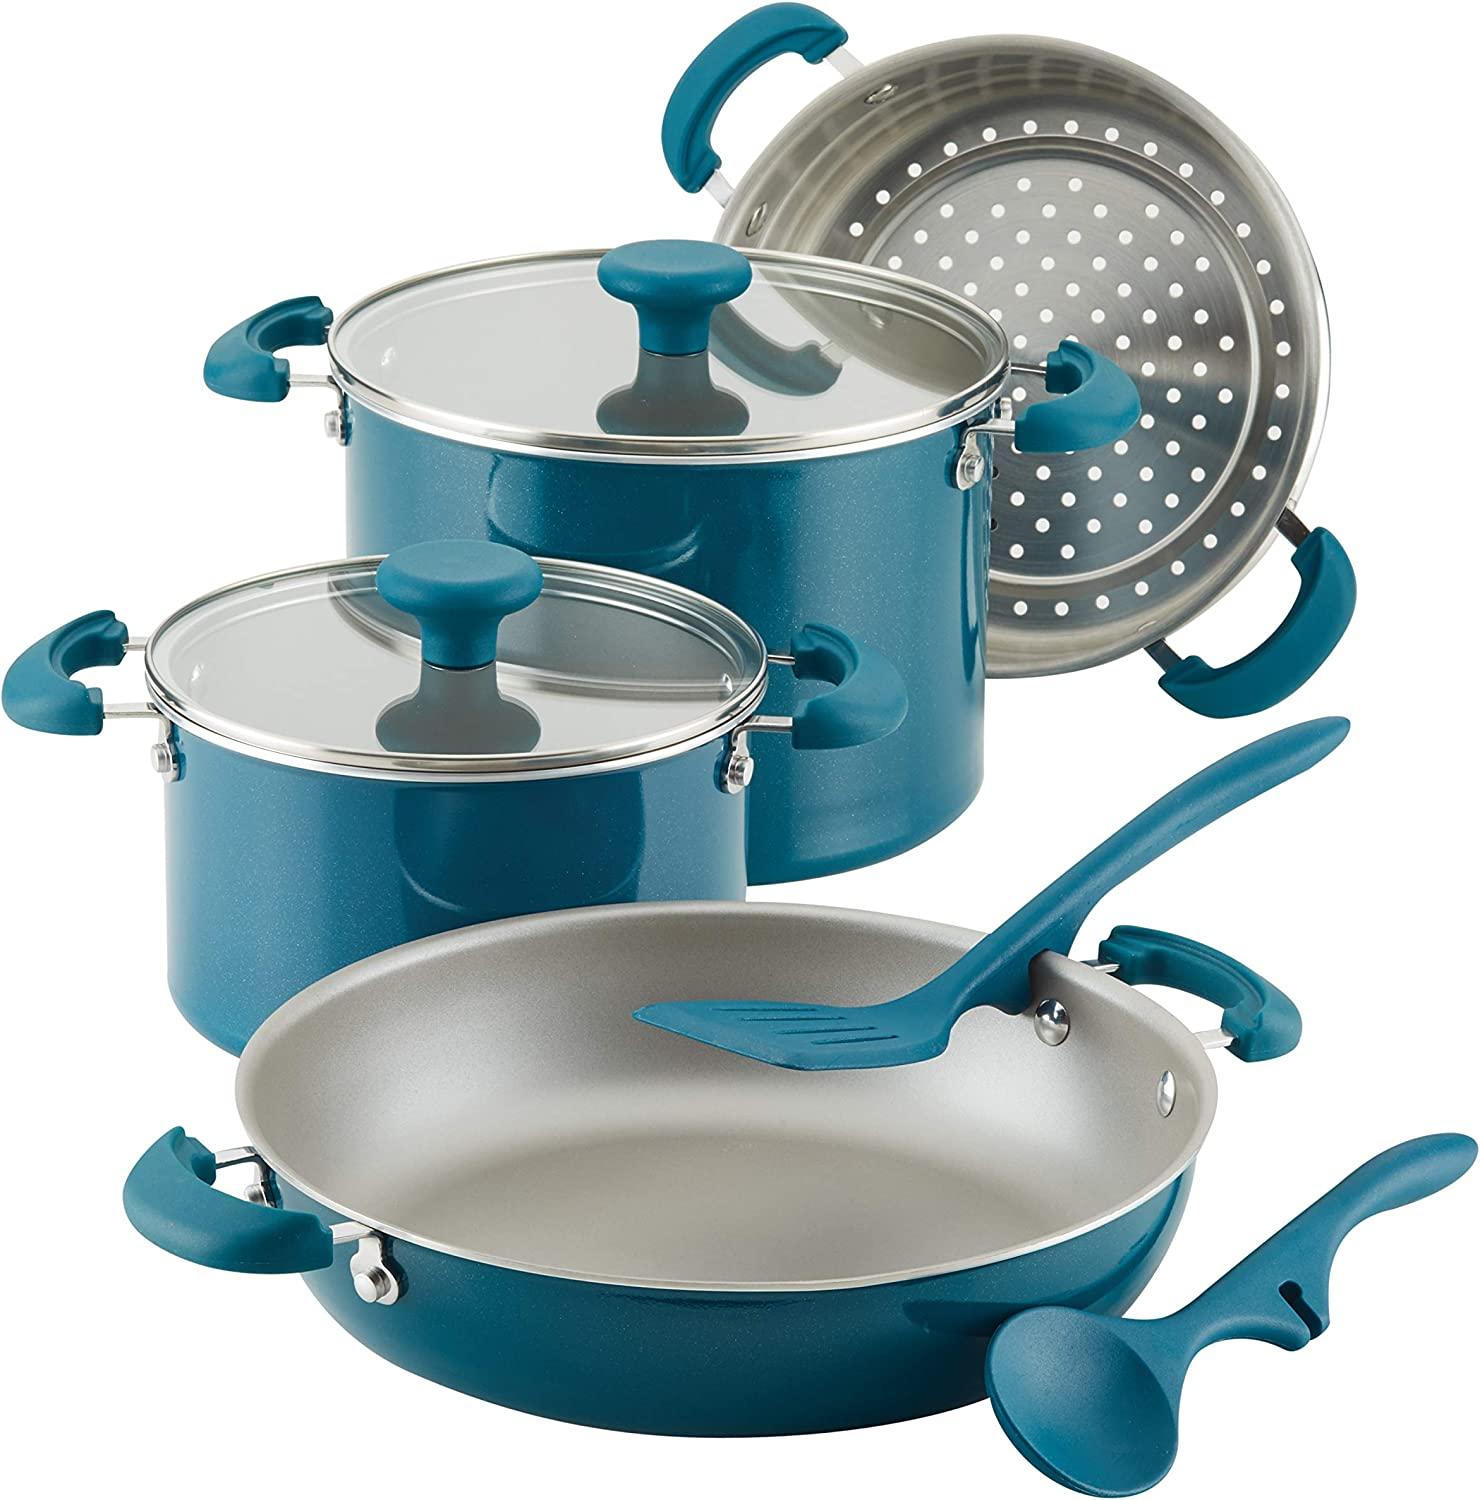 Rachael Ray 8-Piece Aluminum Cookware Set, Teal Shimmer